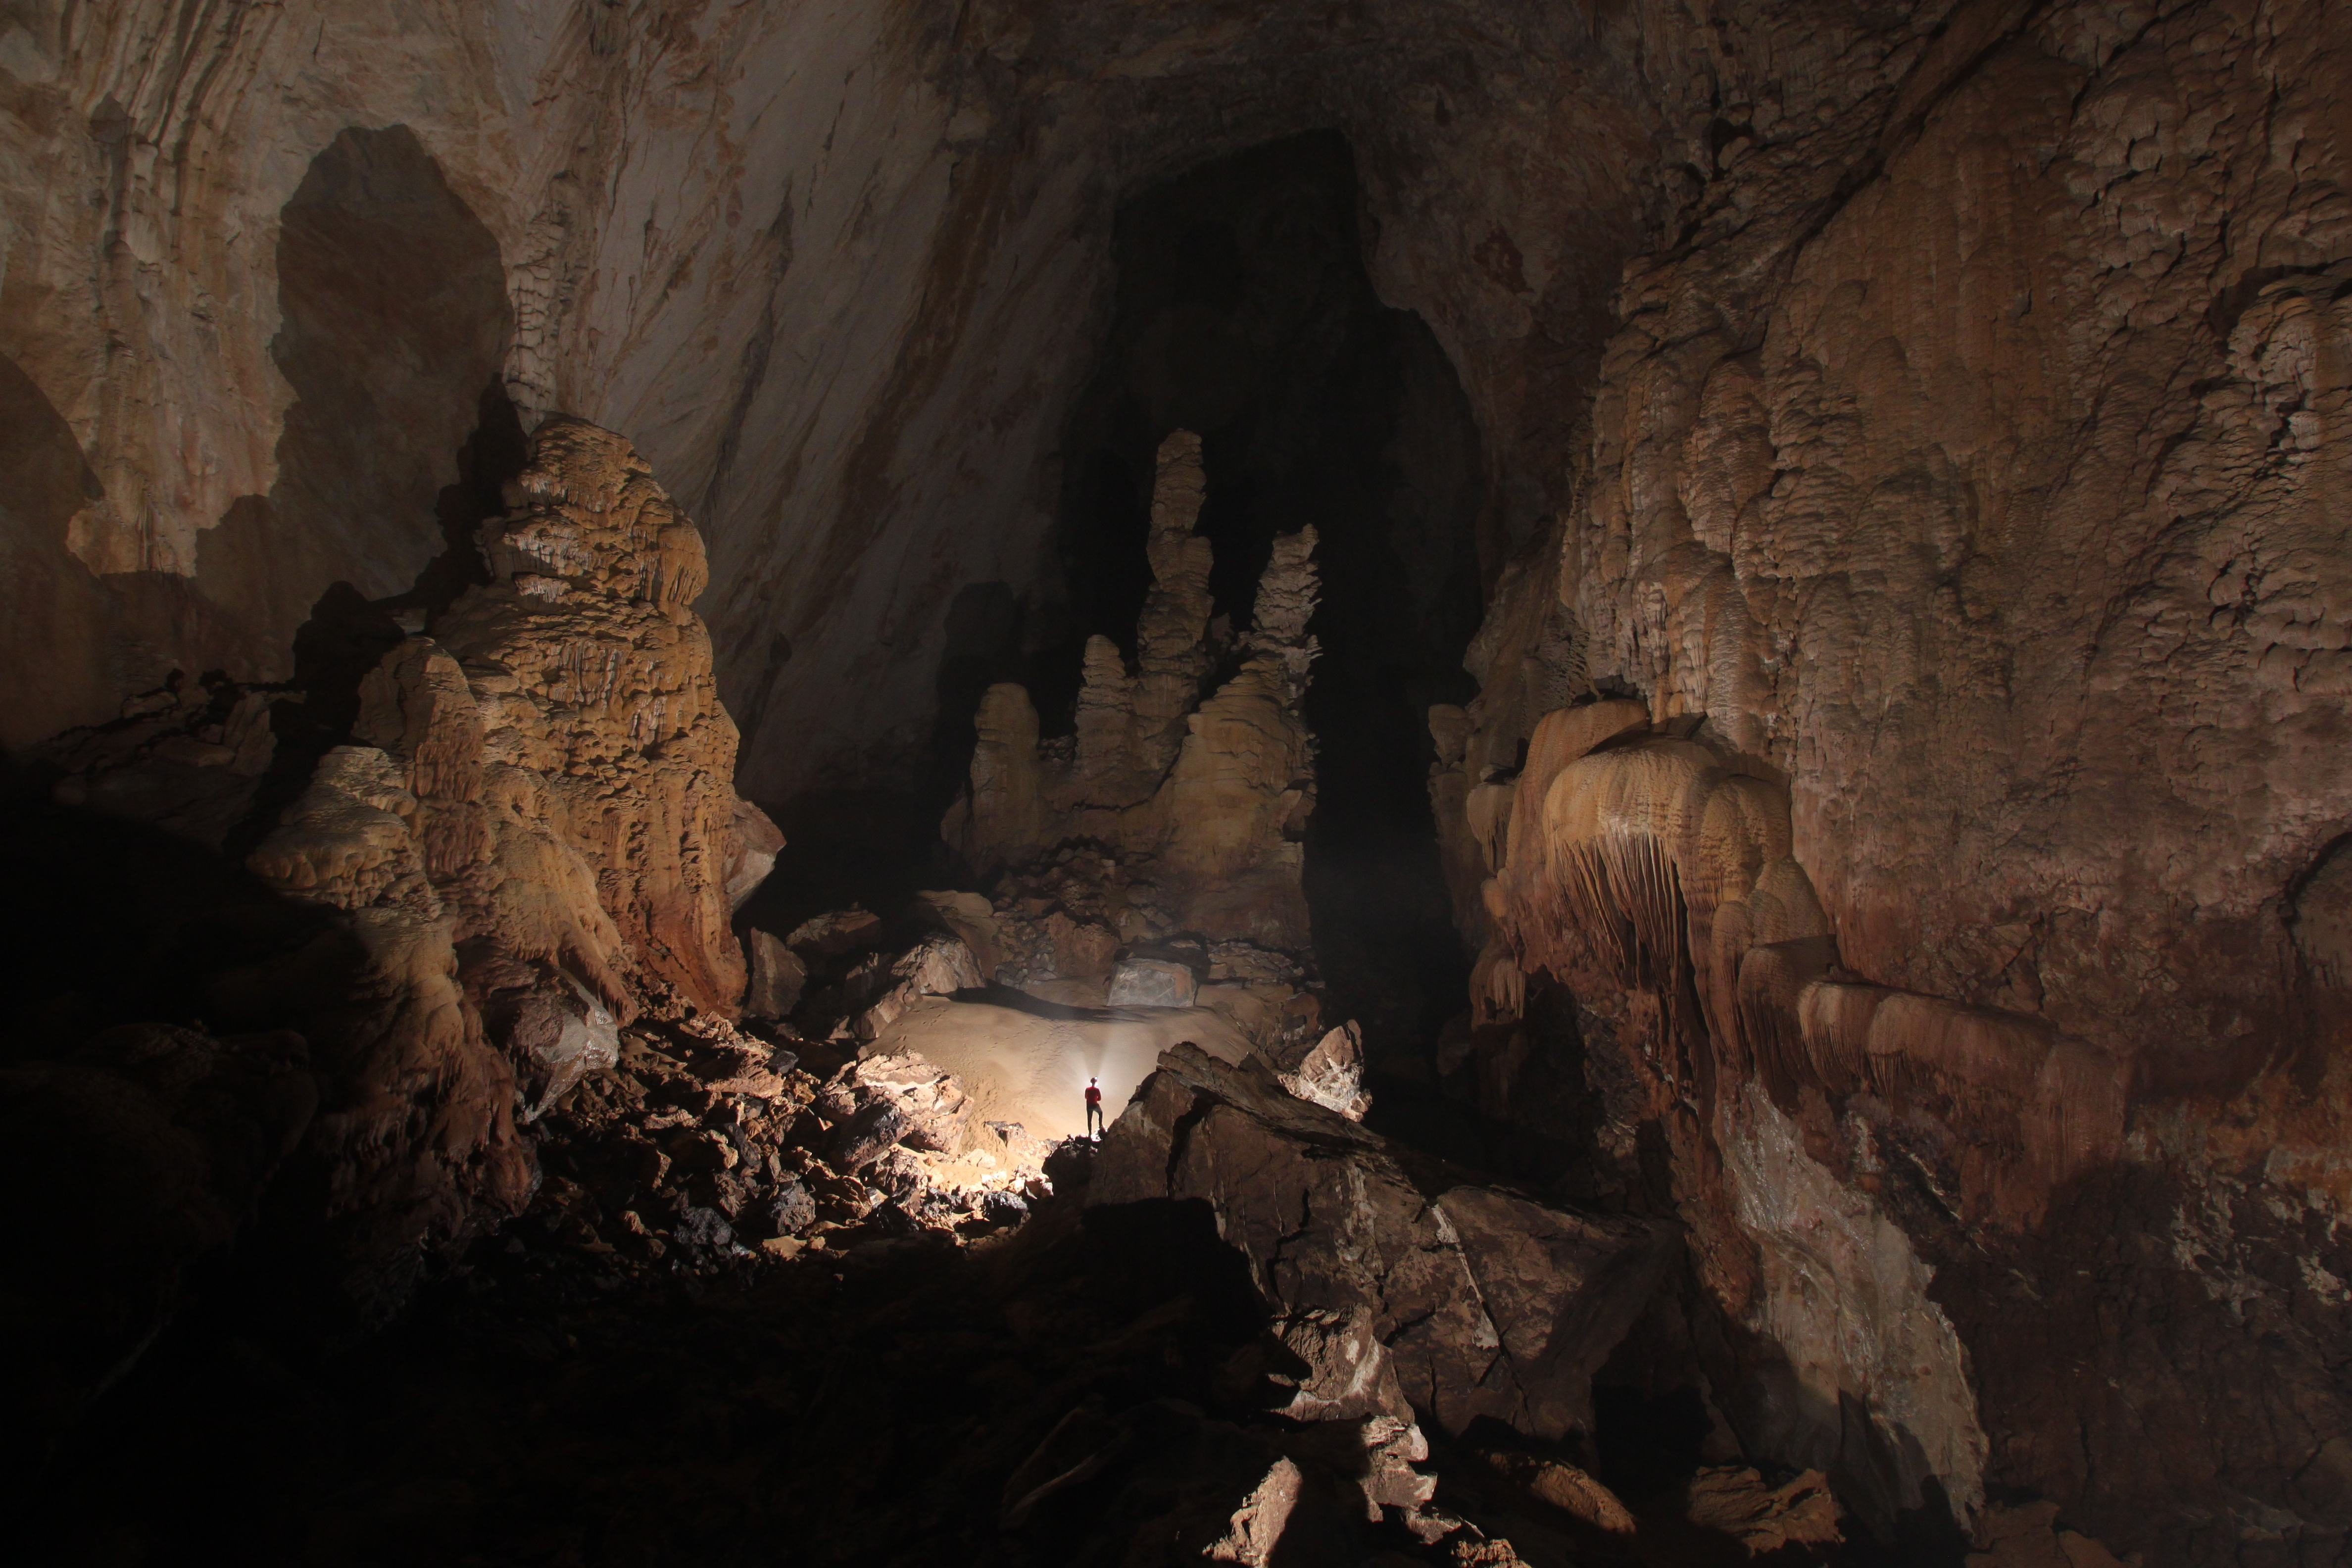 Spelunking Hope and vision passage. Photo by Howard Limbert